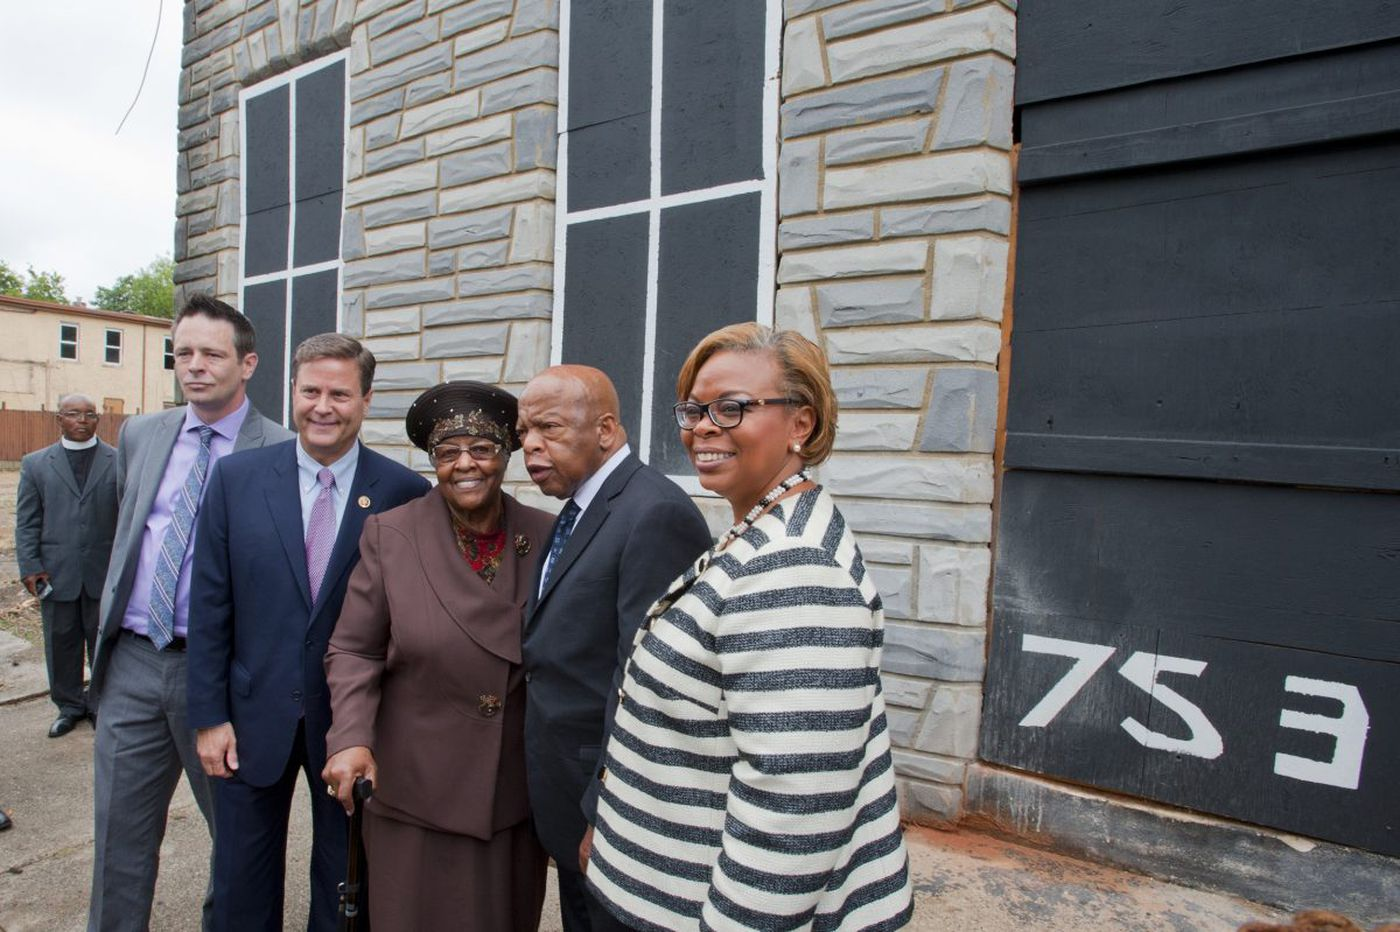 Researchers dispute historical significance of Camden house tied to Martin Luther King